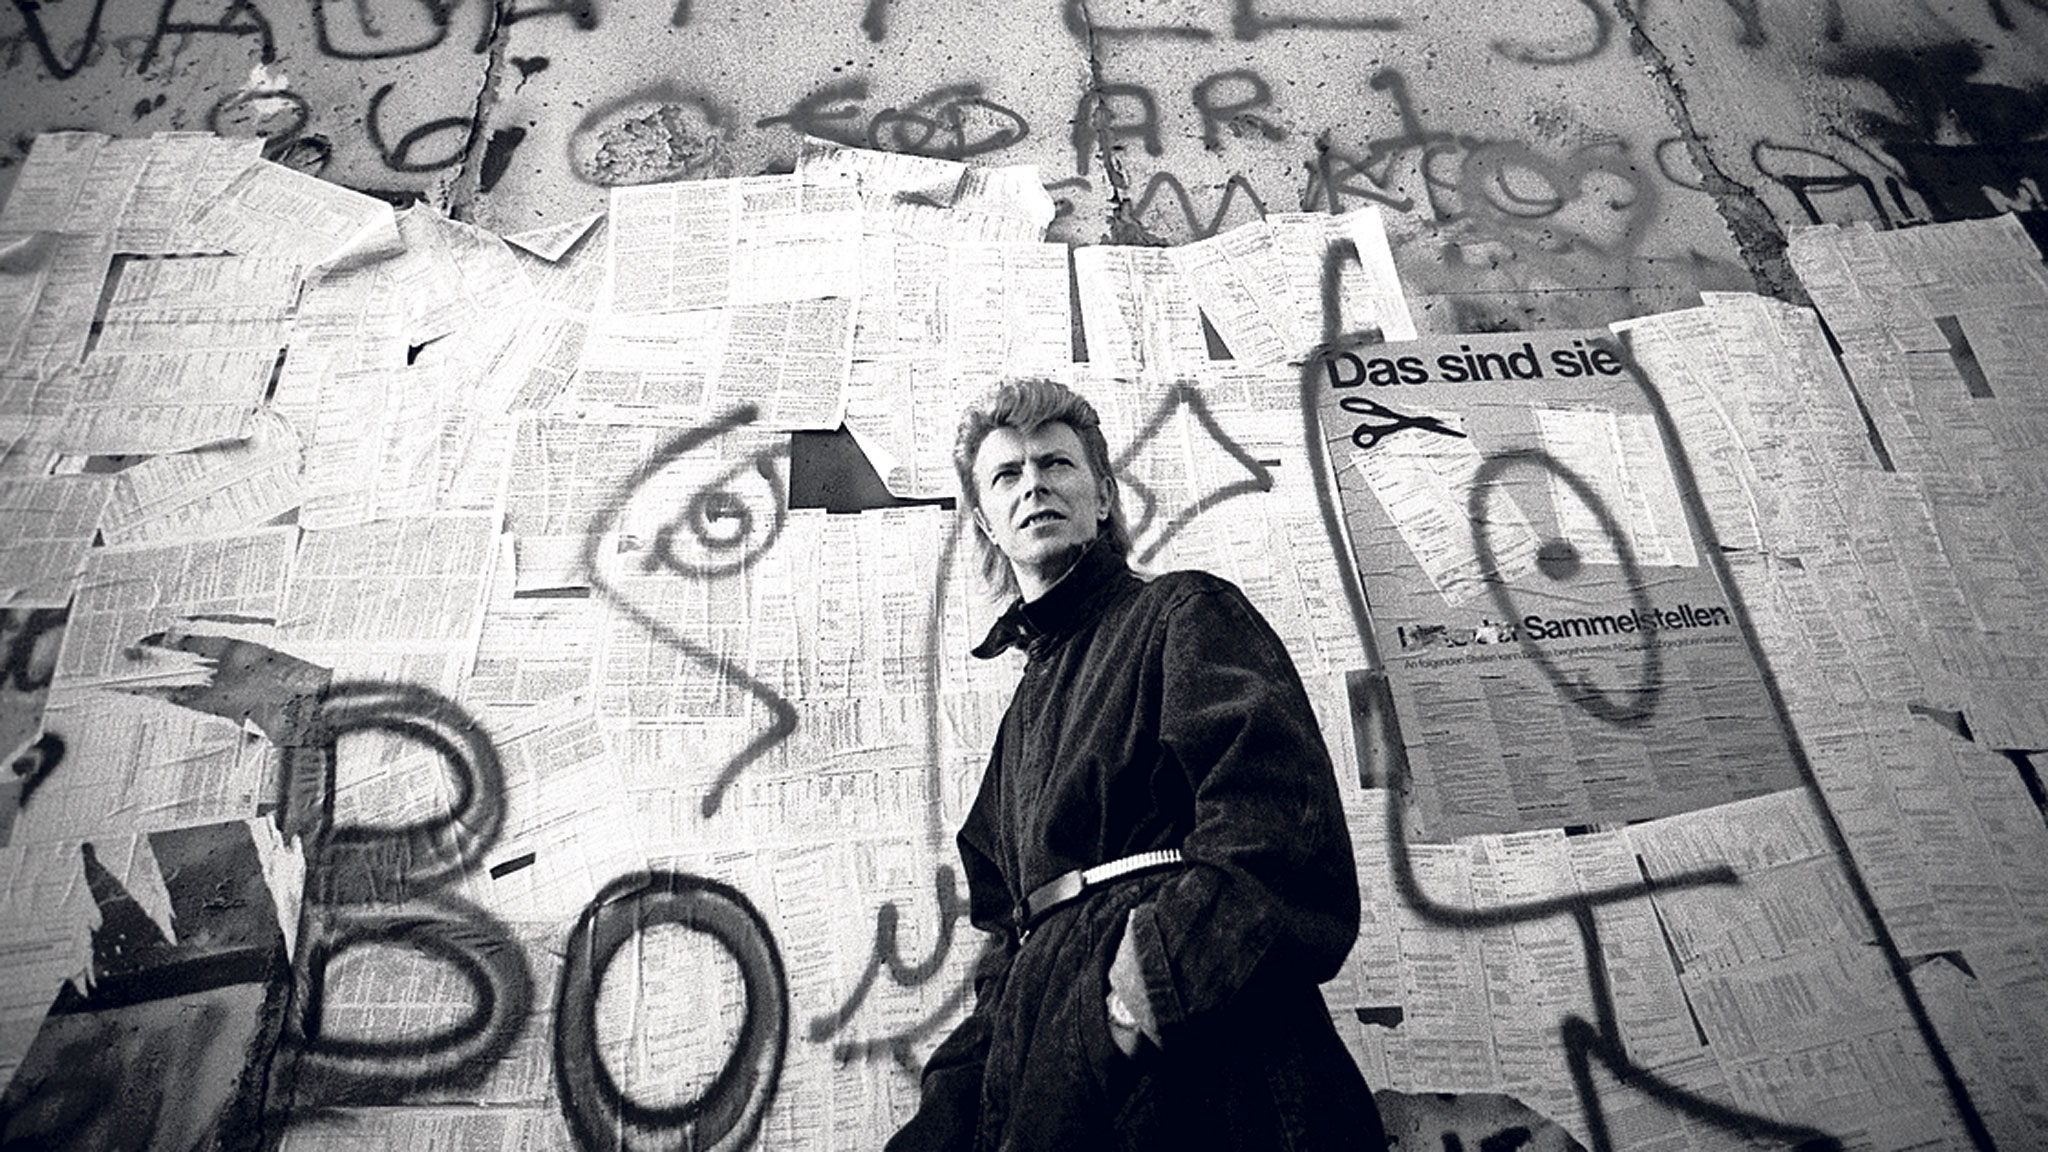 David Bowie in front of the Berlin Wall.